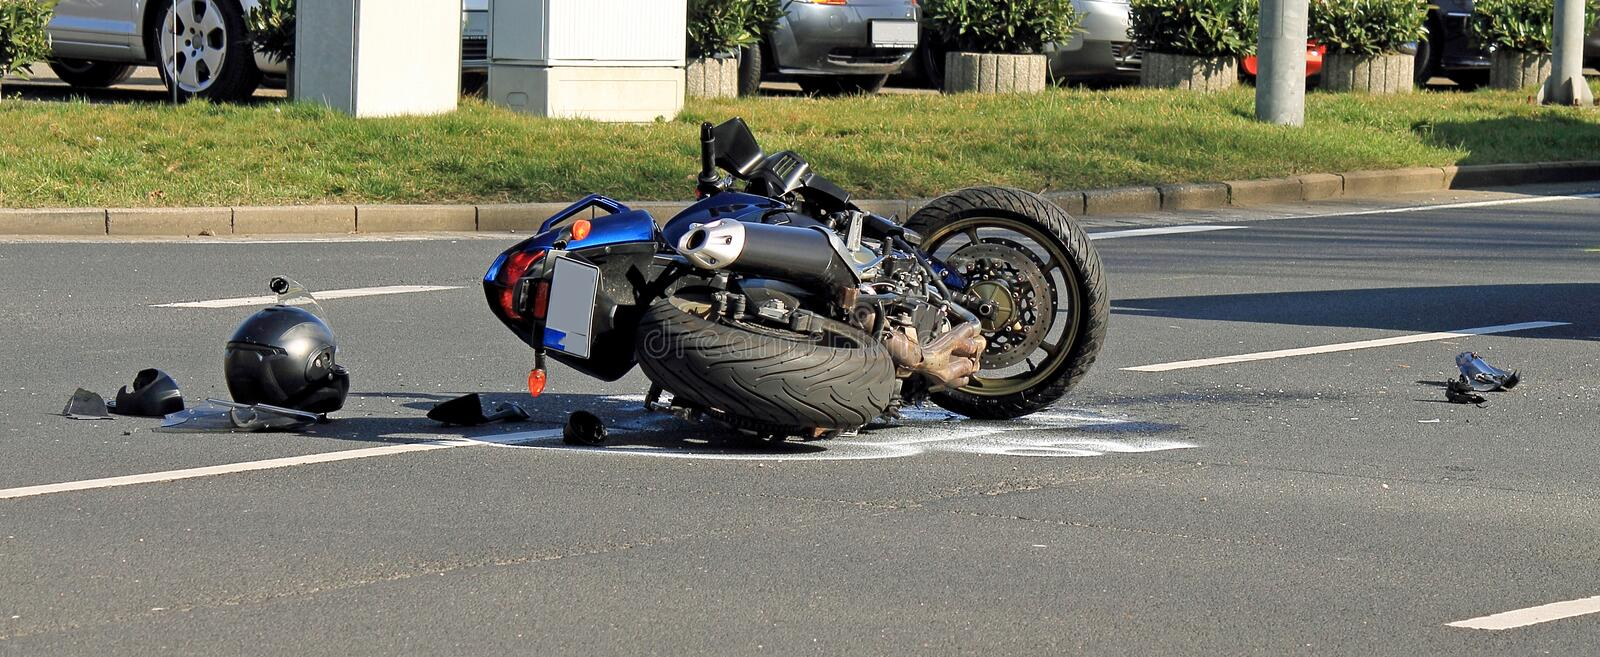 Motorcycle accident on a city road stock photos